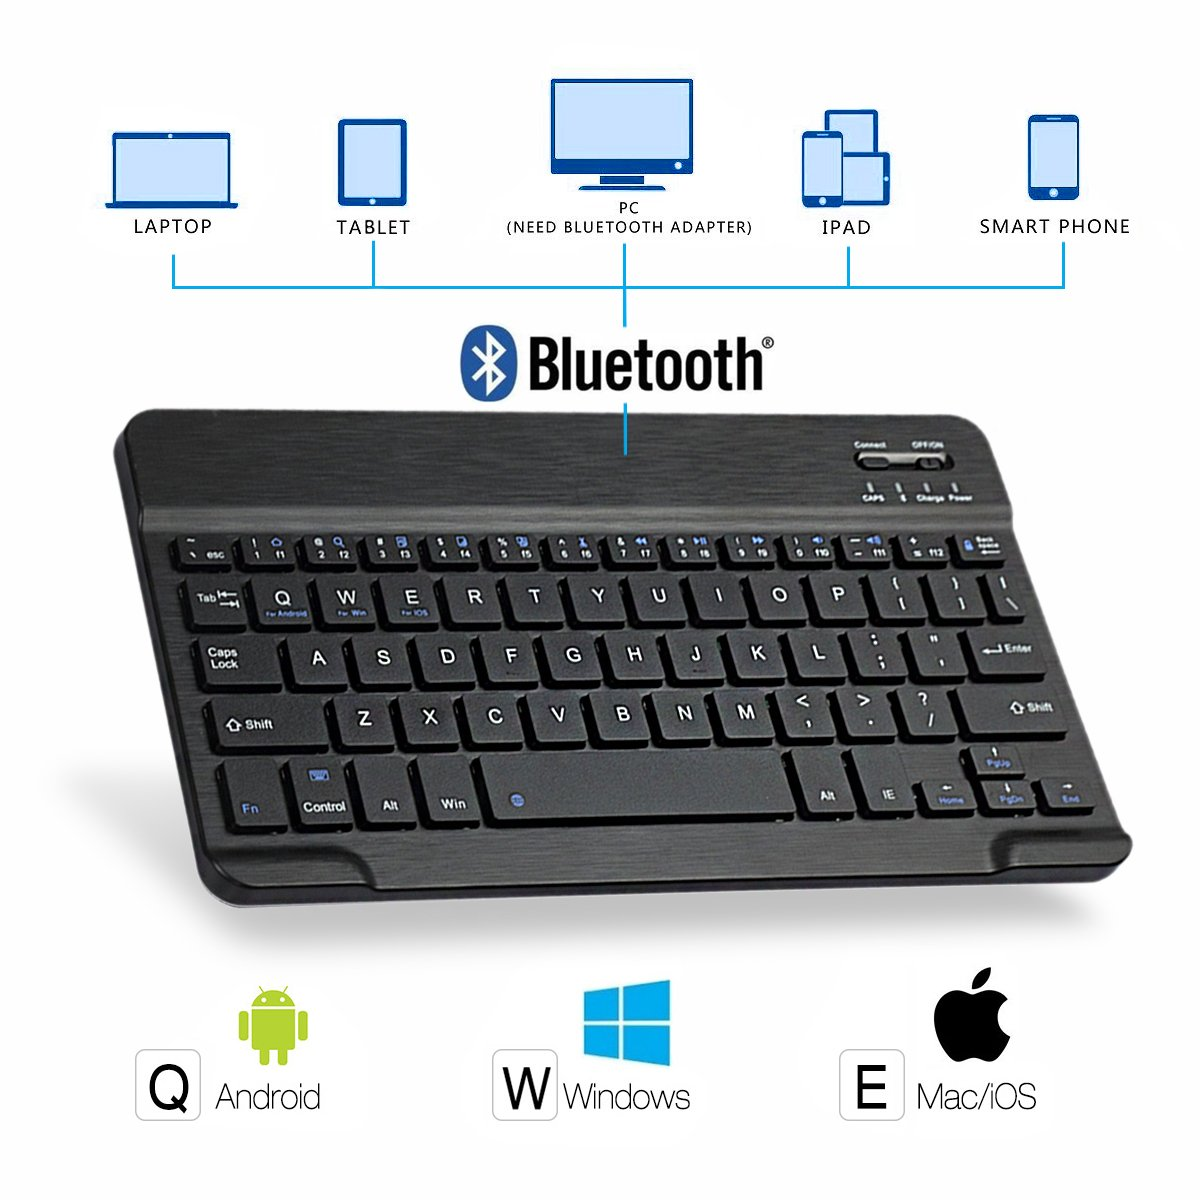 AntArt 10.5 Leather case + Wireless Bluetooth American English ABS Brushed Keyboard for iOS, Android Windows by AntArt (Image #2)